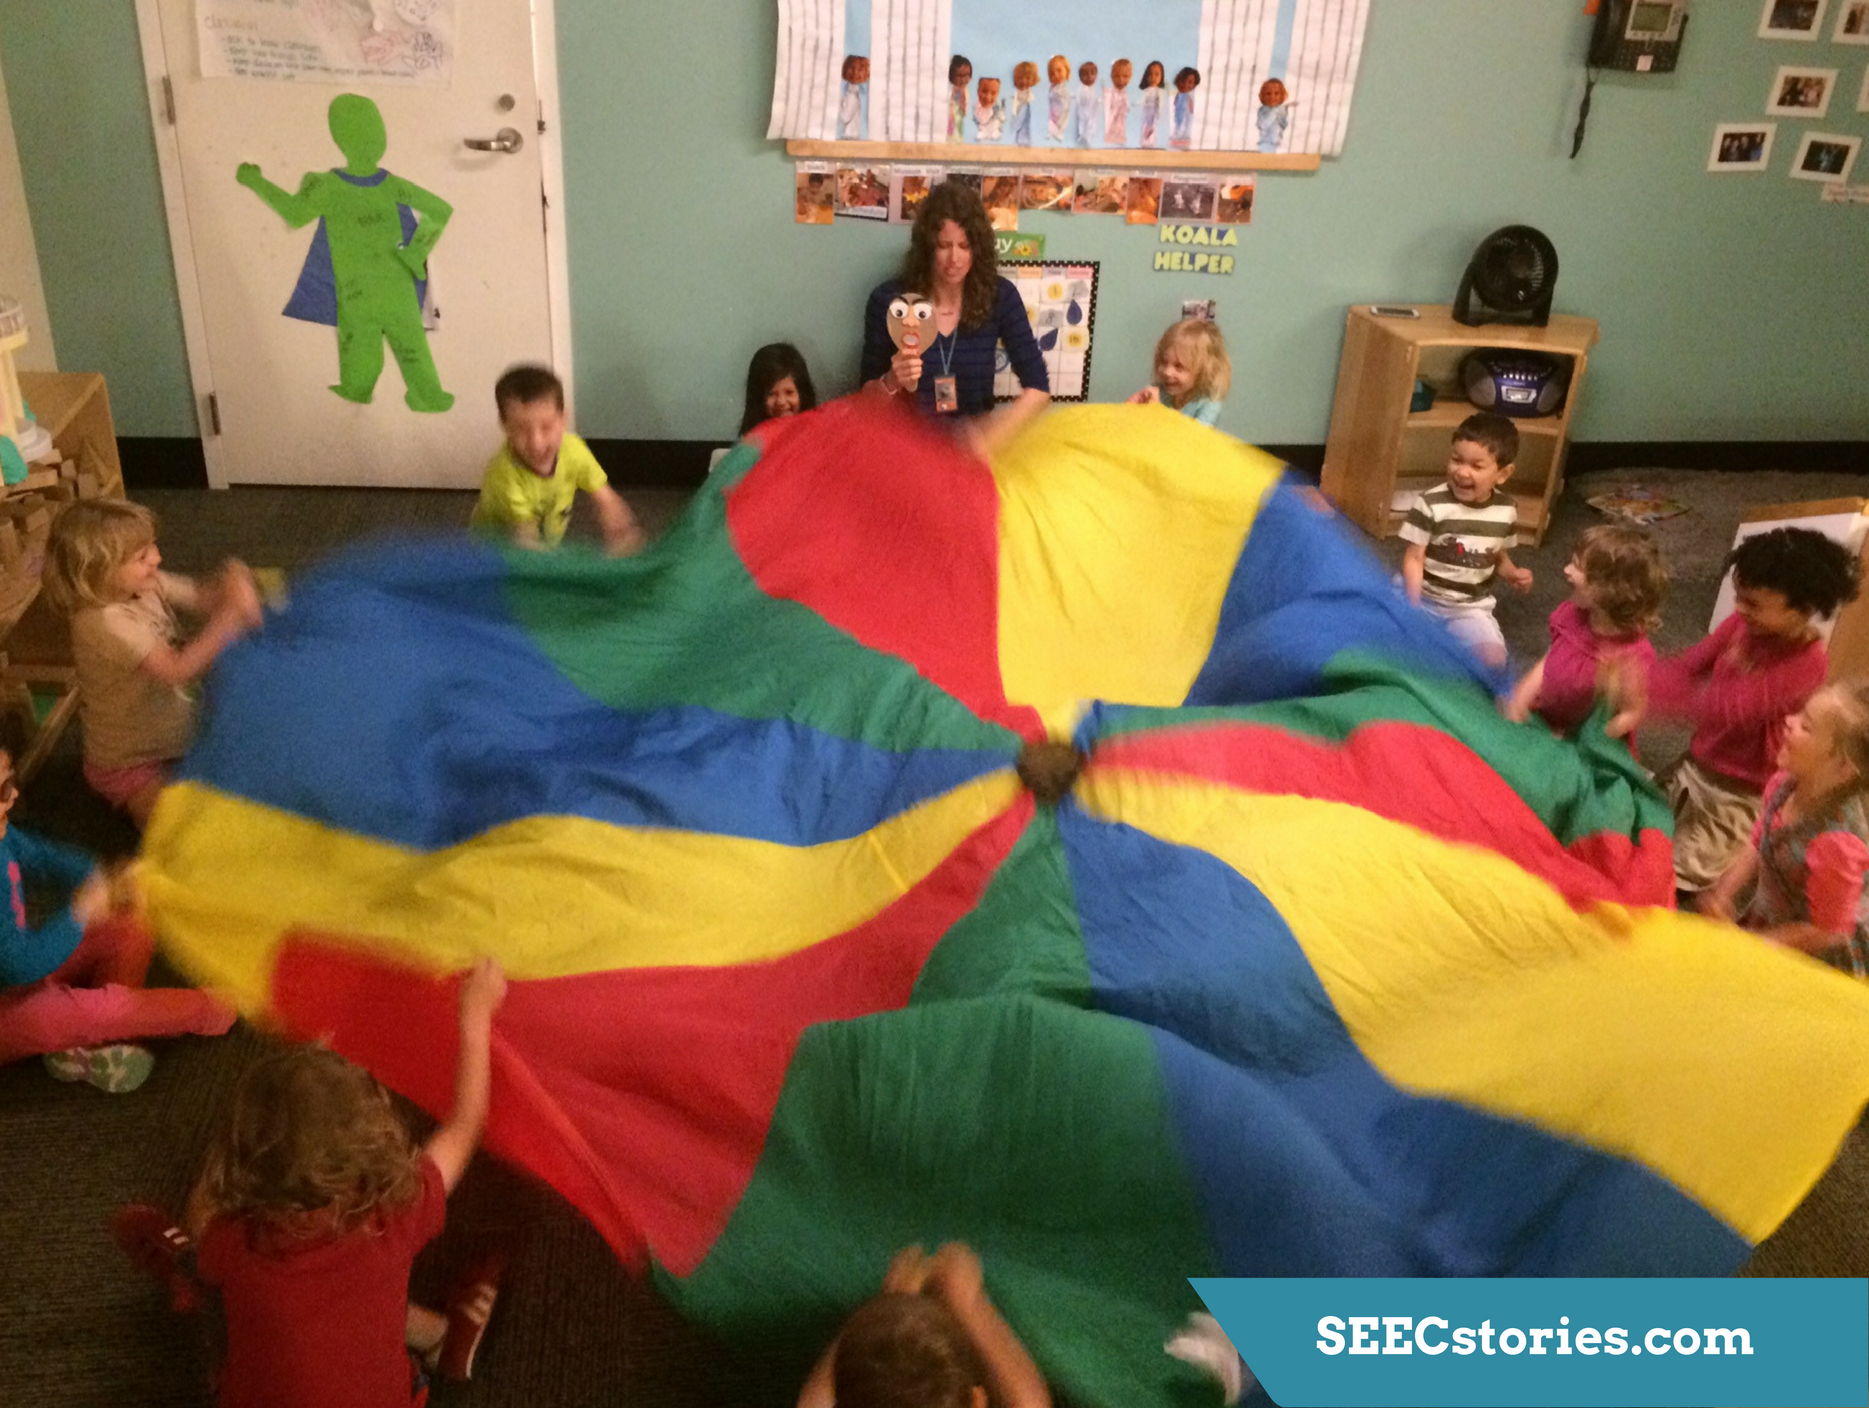 Children sitting in a circle throwing up a parachute